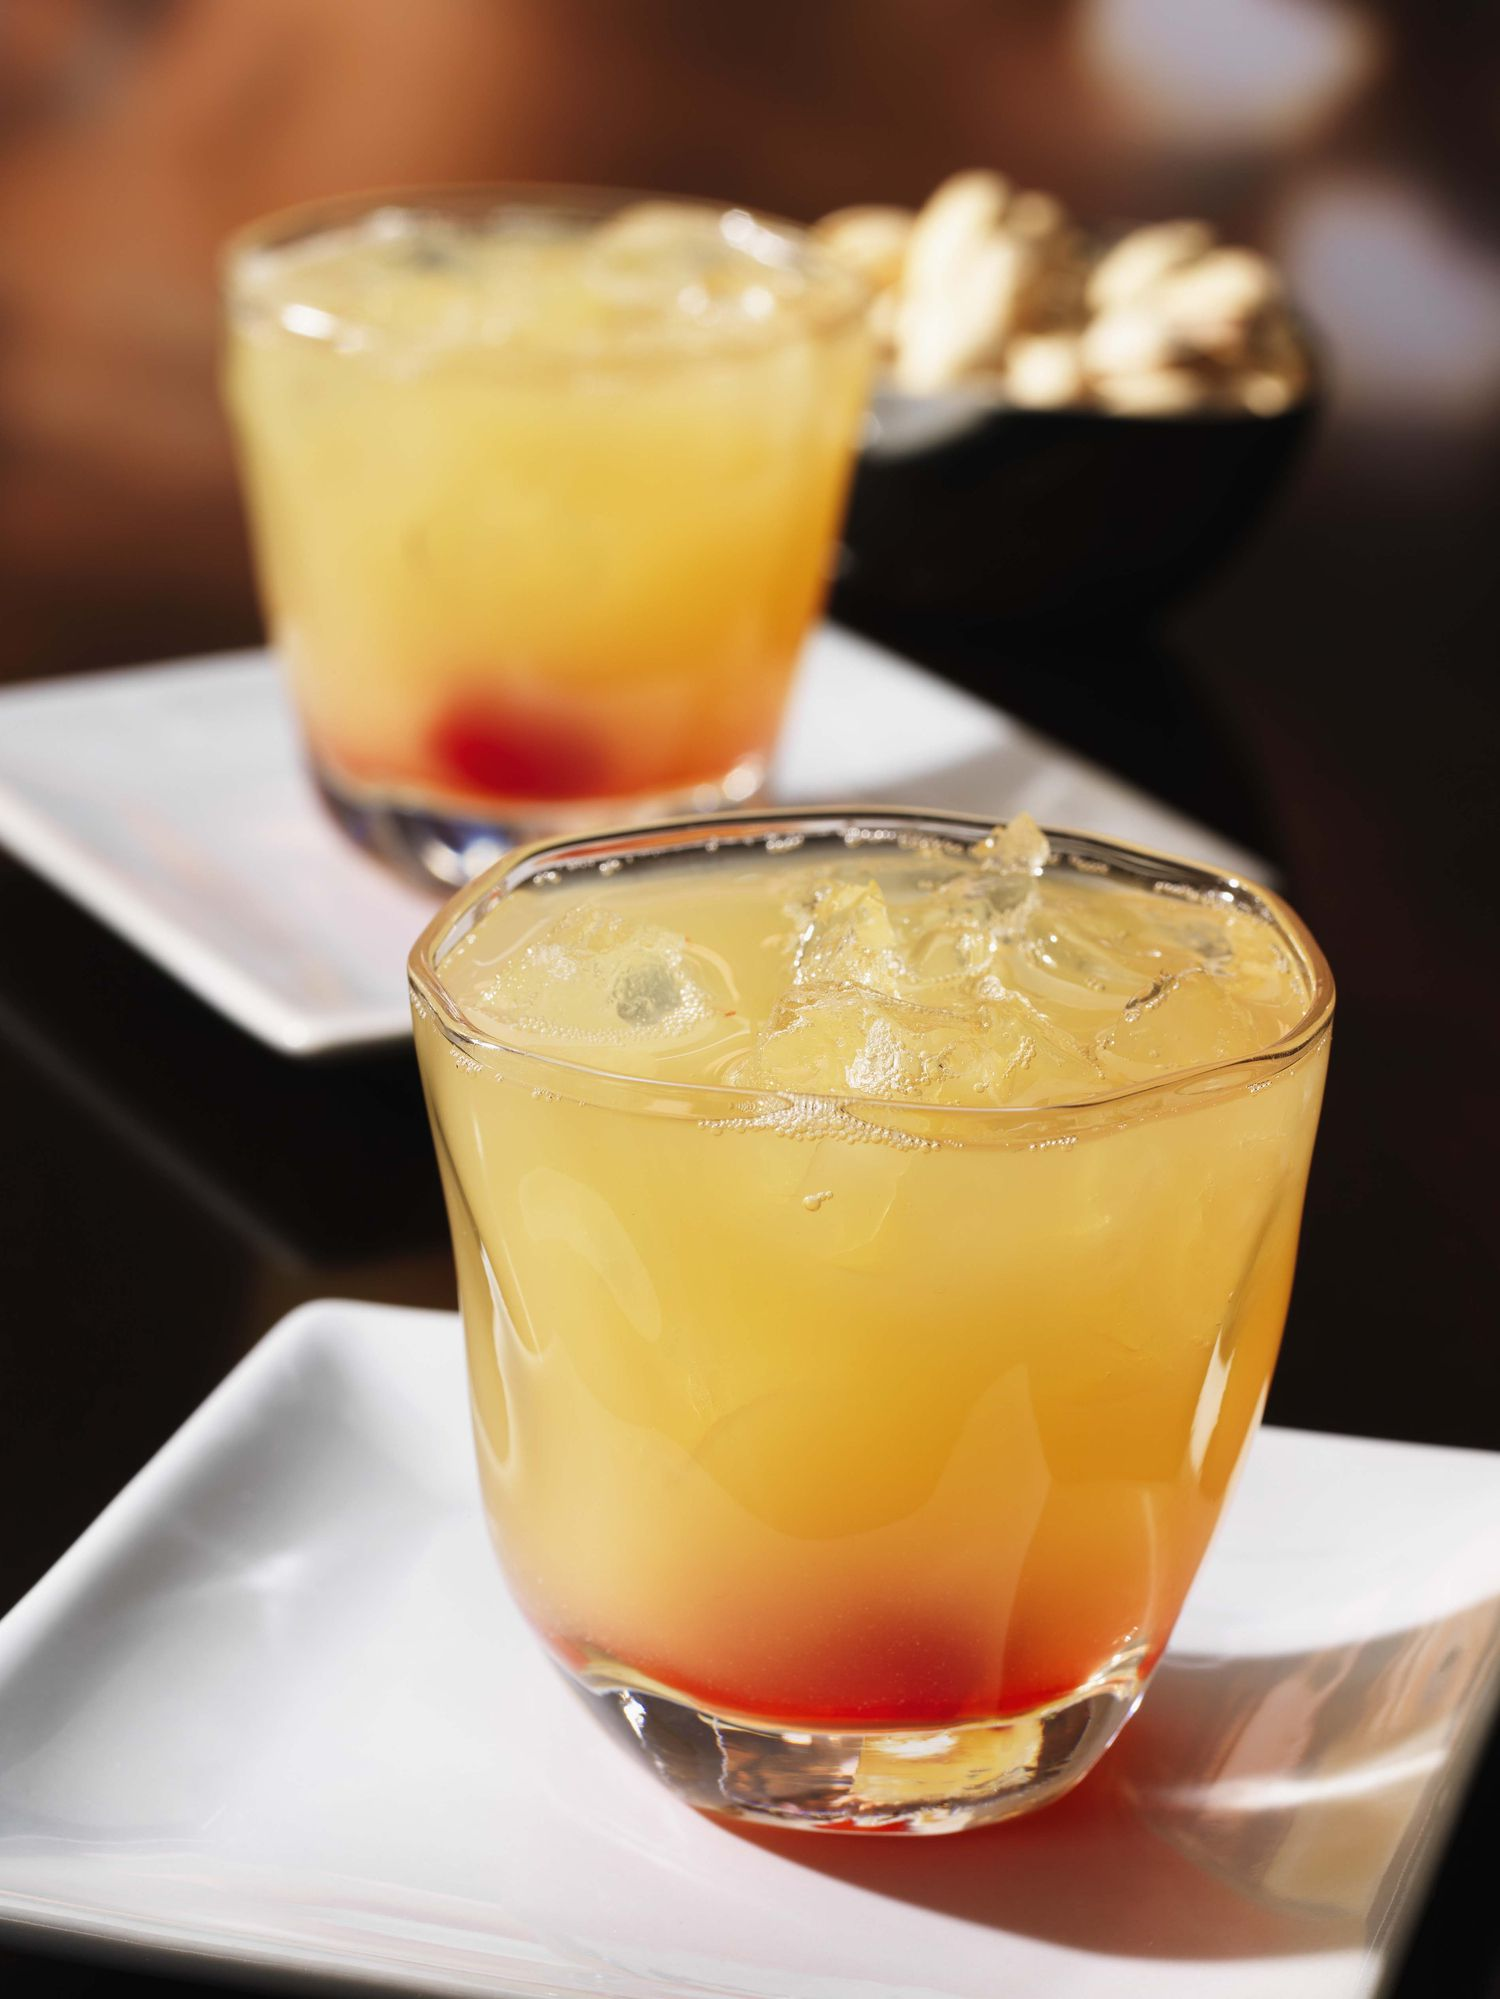 Tequila sunrise cocktail  Kick Back with 2 Tasty Tequila Sunrise Cocktail Recipes